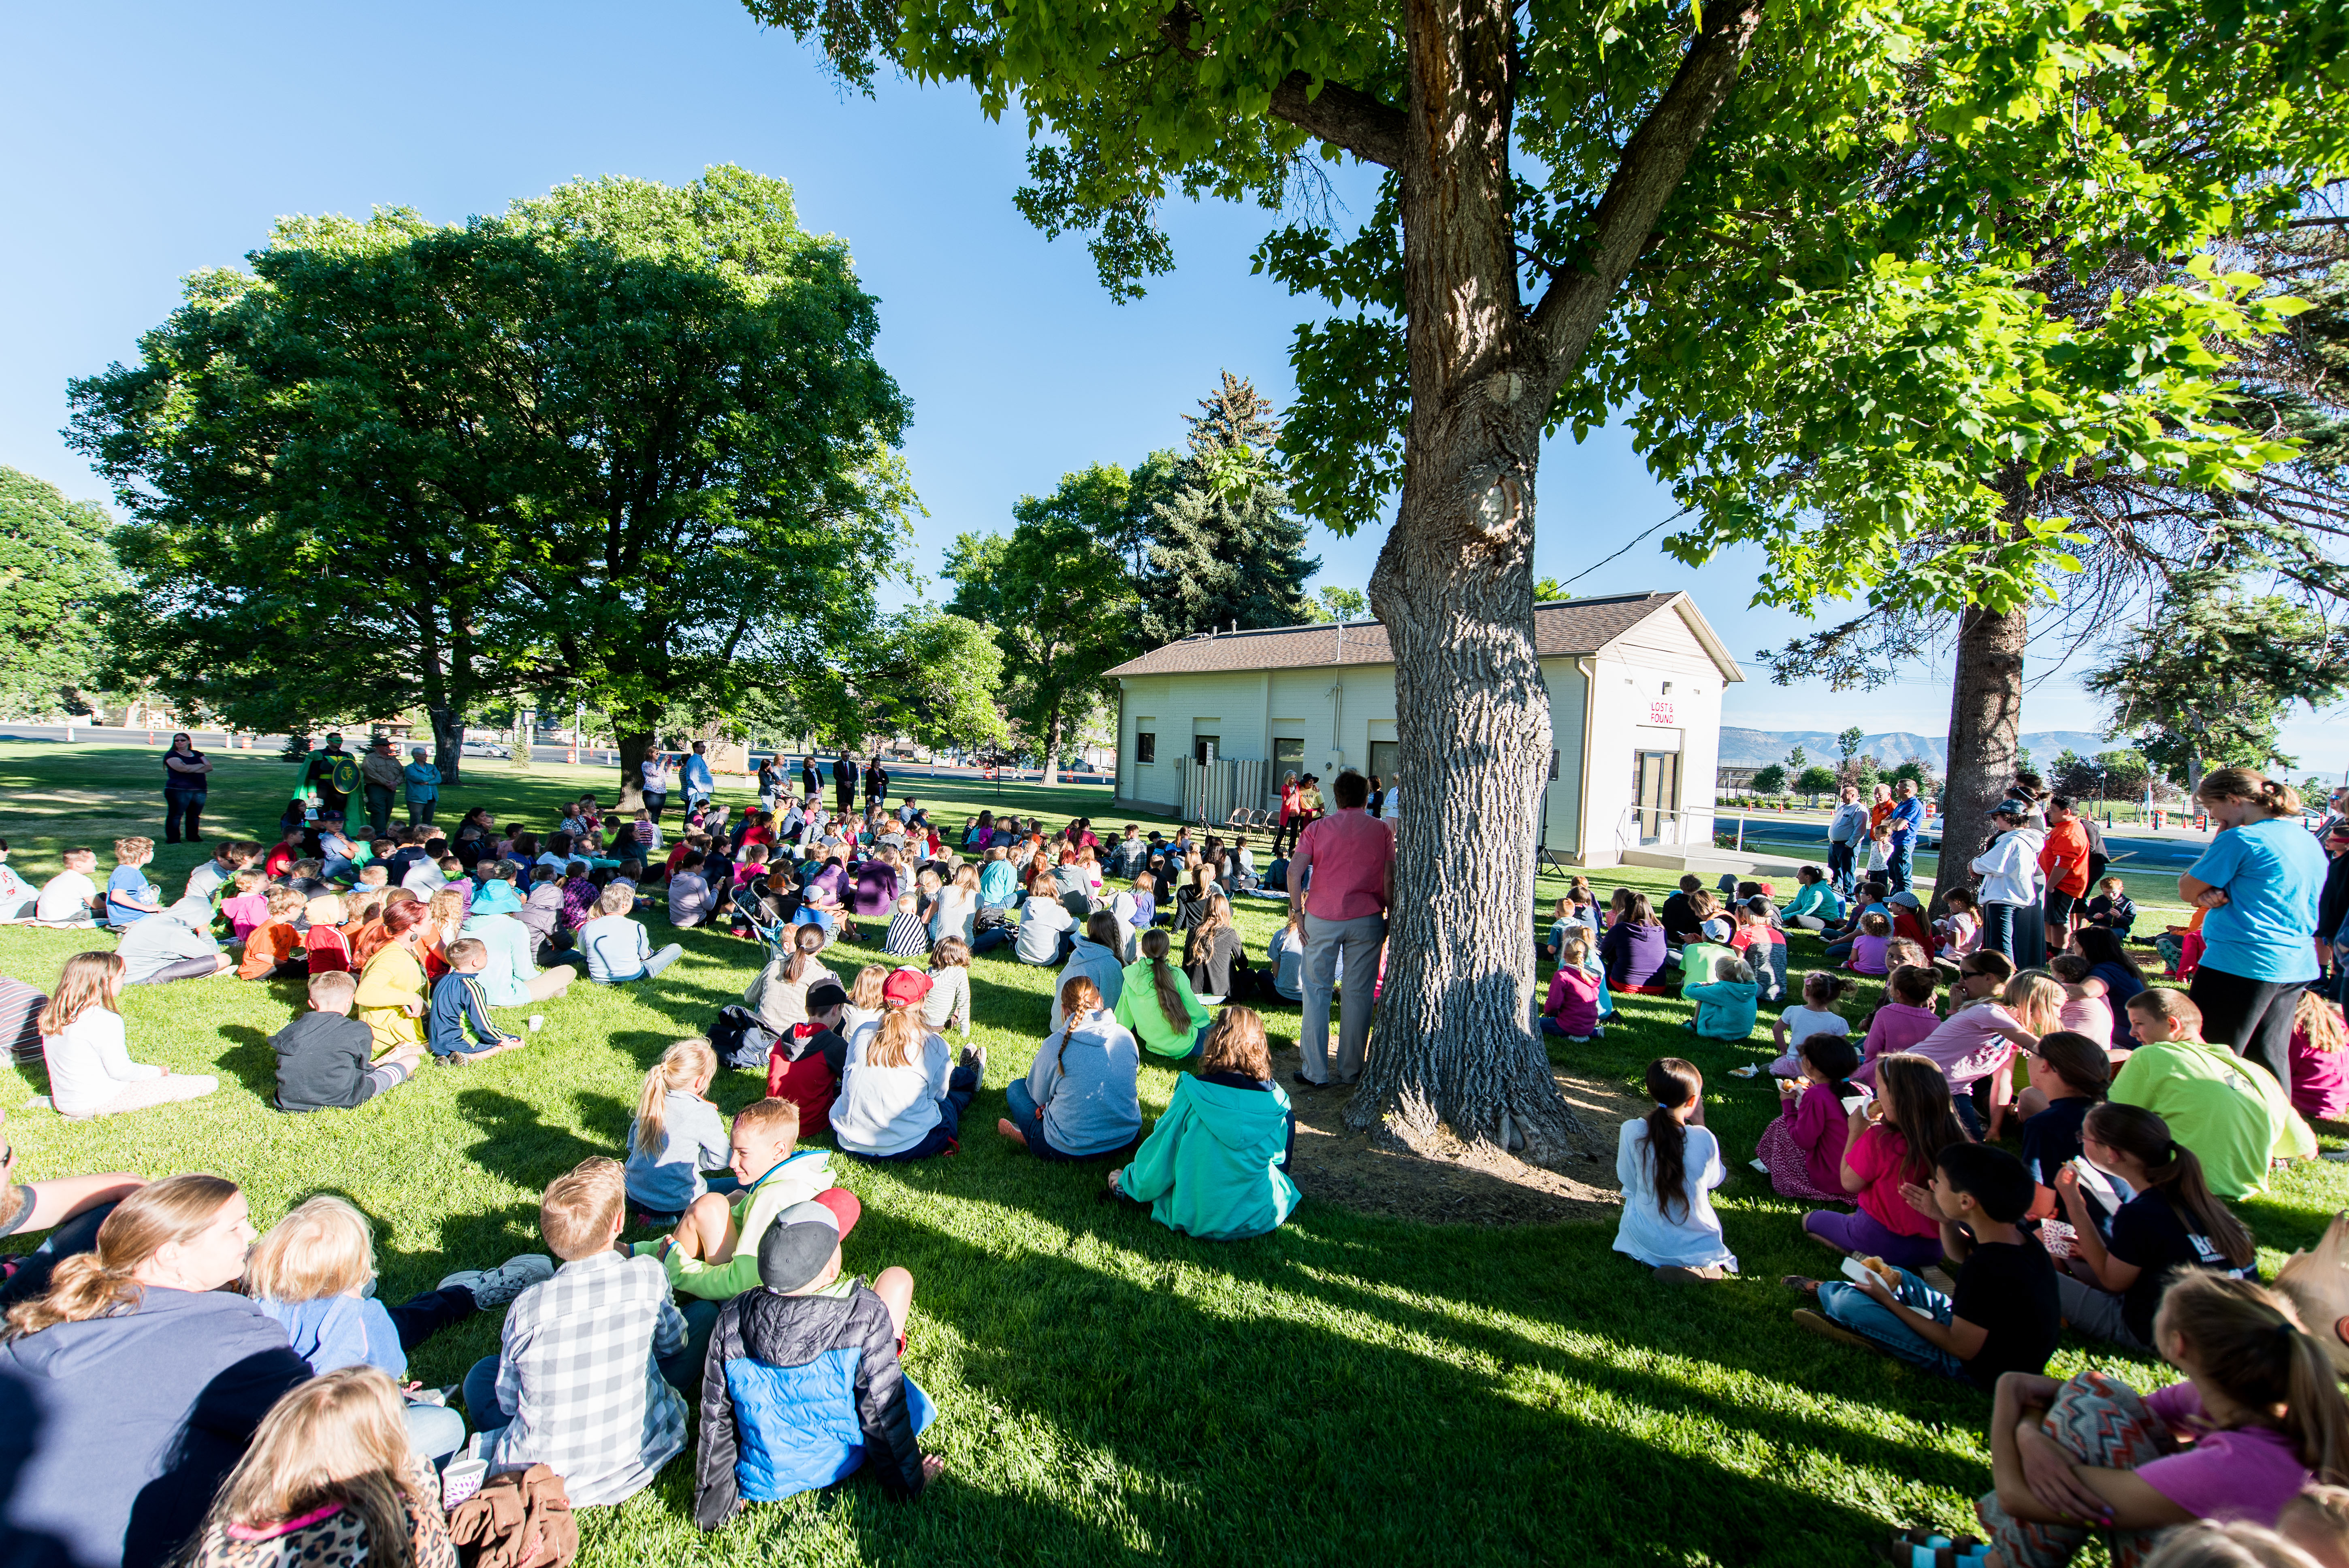 Children and parents gather to hear from Primary general president Joy D. Jones on June 21 after cleaning up the grounds of the Manti Utah Temple across the street.